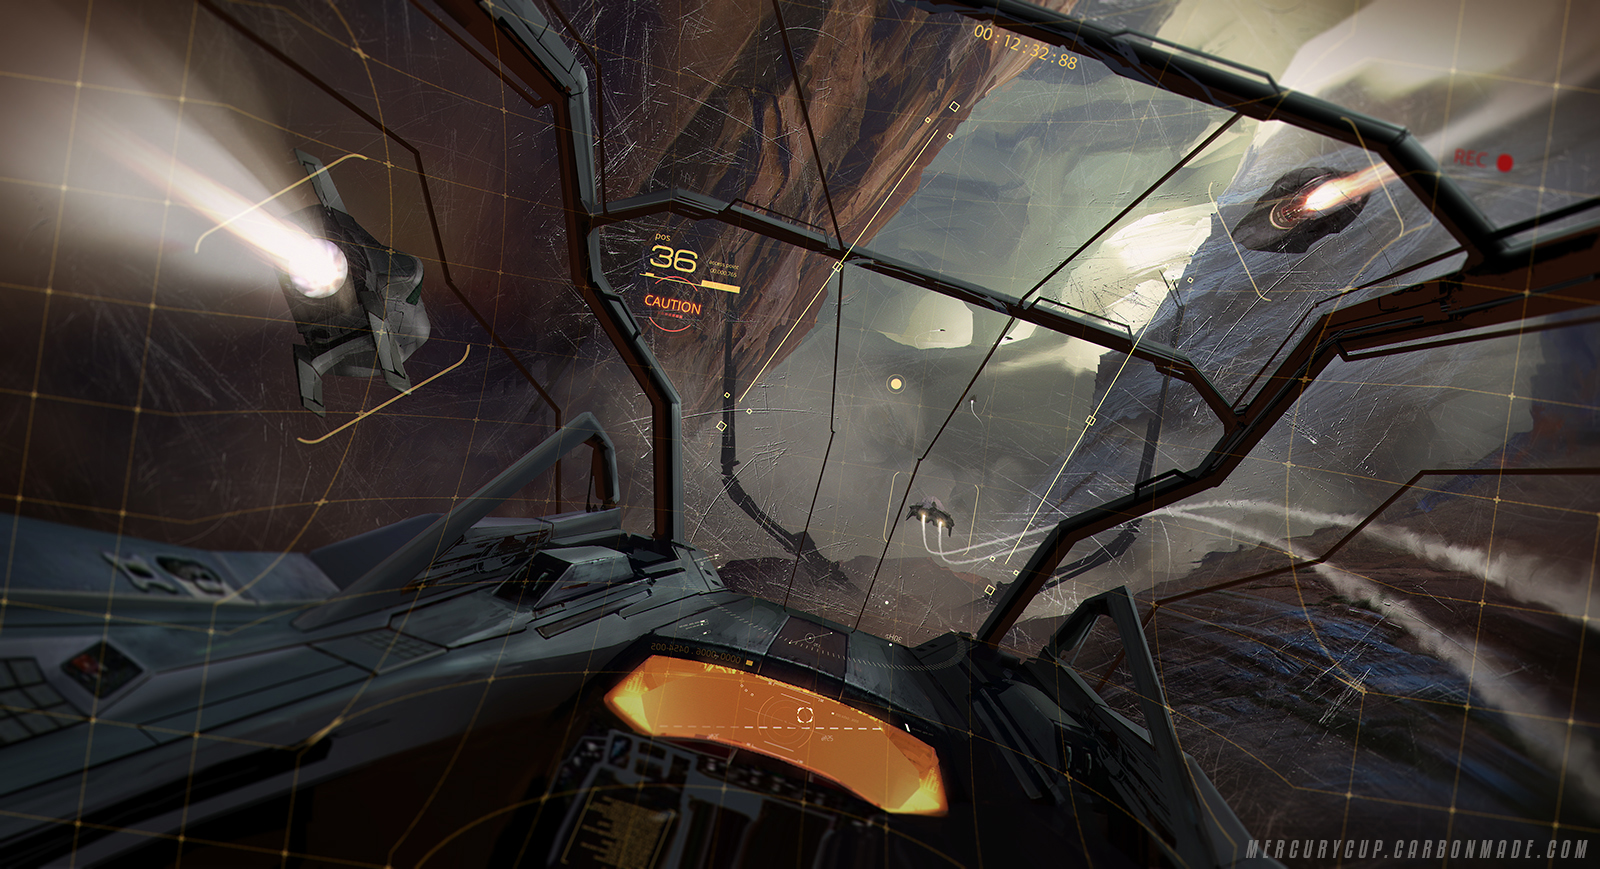 Cockpit View By Long Pham On Deviantart